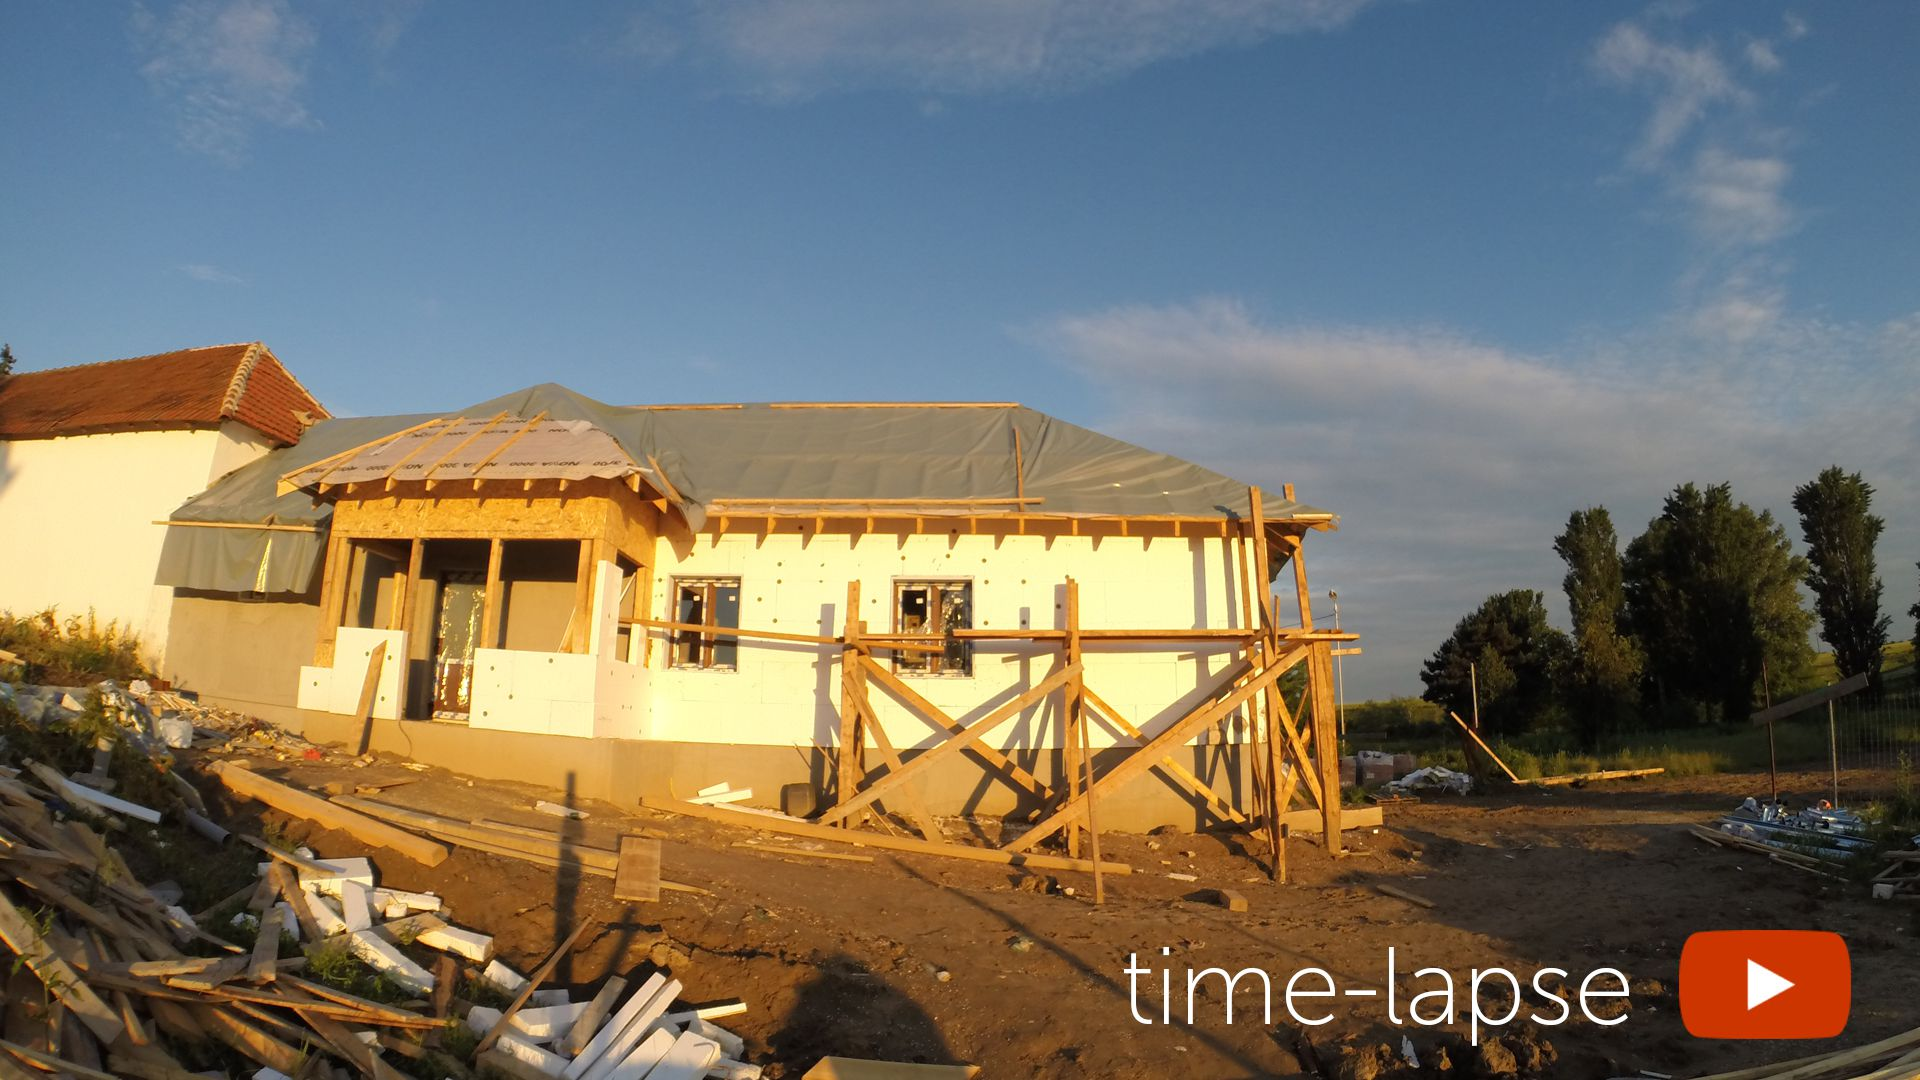 Time-lapse house 4k video sequence